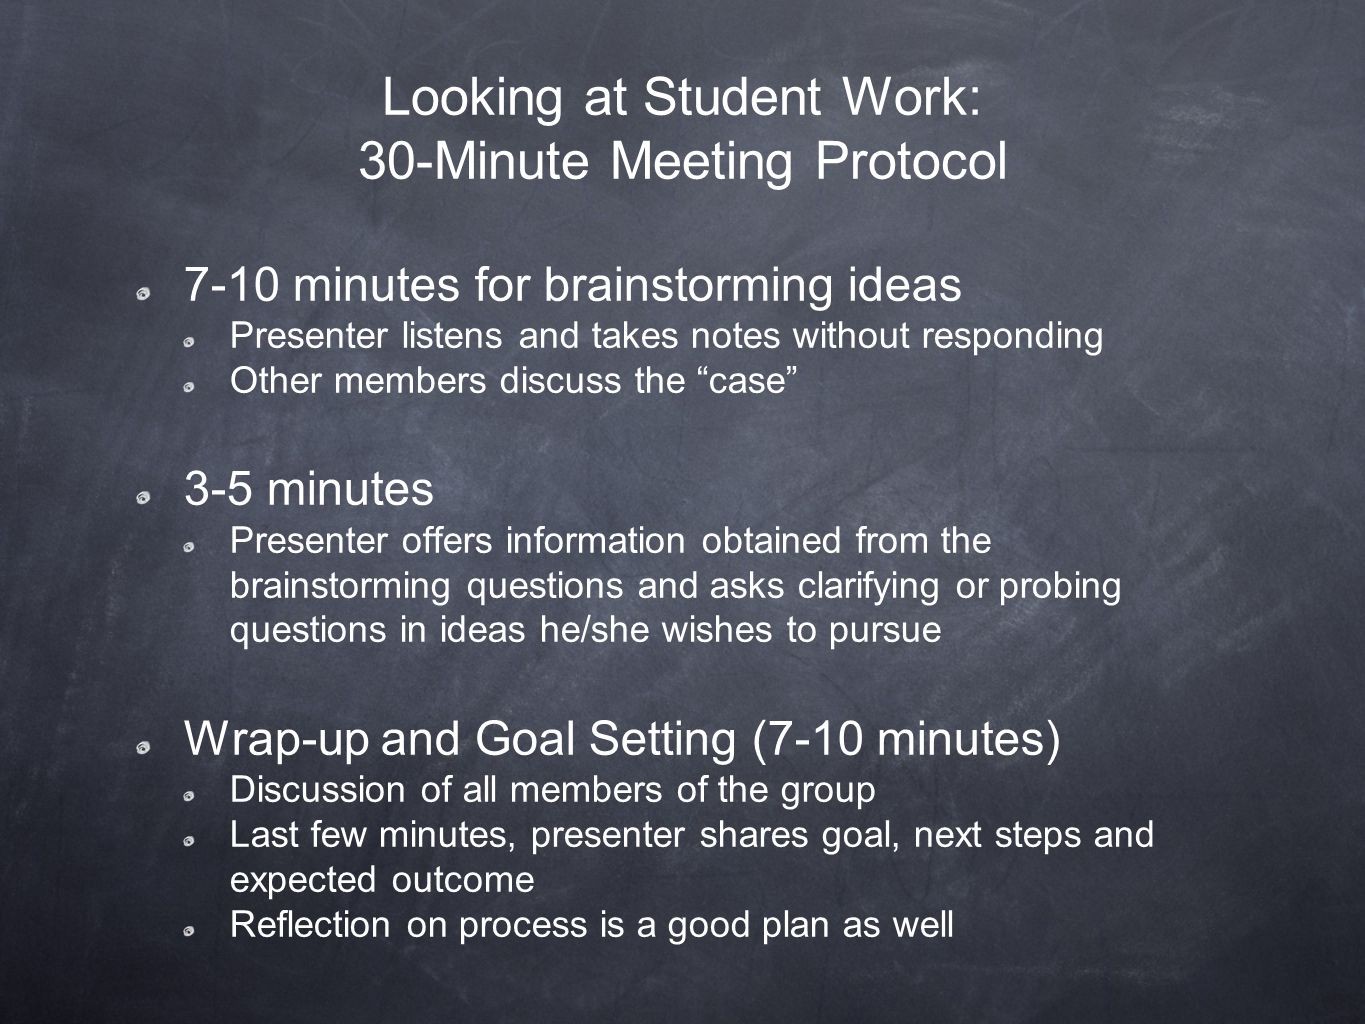 Looking at Student Work: 30-Minute Meeting Protocol 7-10 minutes for brainstorming ideas Presenter listens and takes notes without responding Other members discuss the case 3-5 minutes Presenter offers information obtained from the brainstorming questions and asks clarifying or probing questions in ideas he/she wishes to pursue Wrap-up and Goal Setting (7-10 minutes) Discussion of all members of the group Last few minutes, presenter shares goal, next steps and expected outcome Reflection on process is a good plan as well